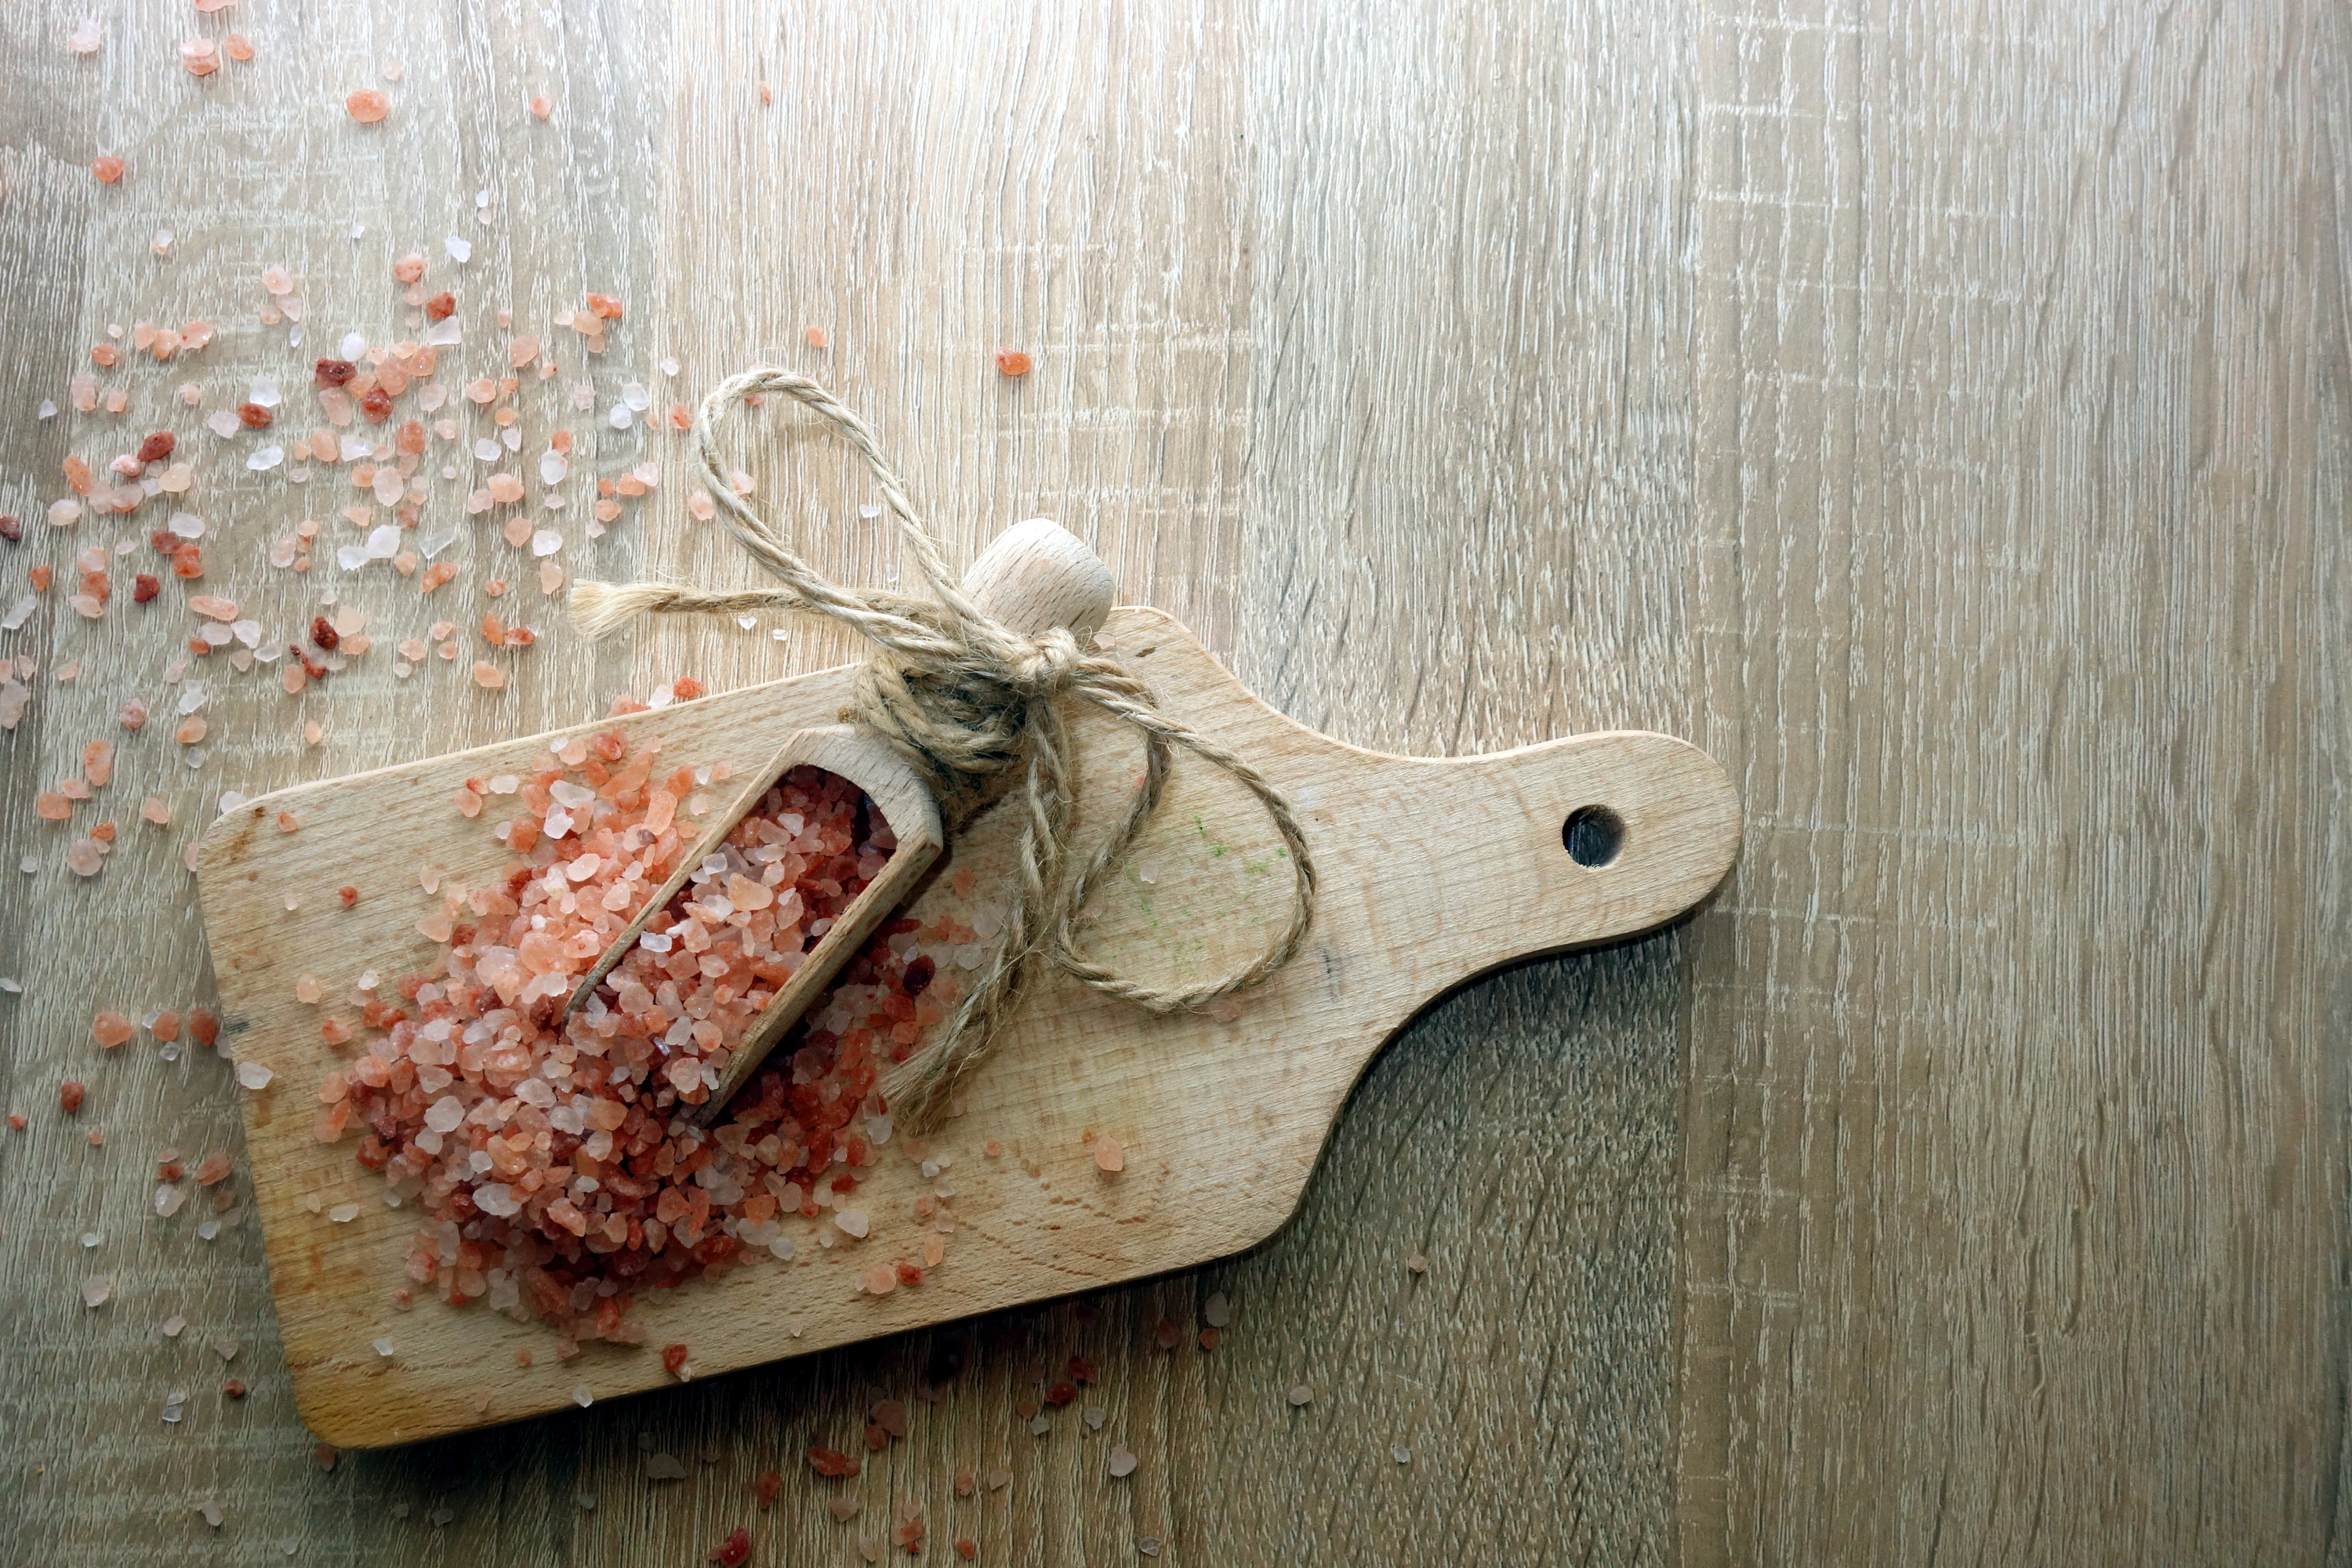 These DIY bath salts are so easy to make with peonies you can dry from your garden. Learn how easy it is. You will feel so relaxed.